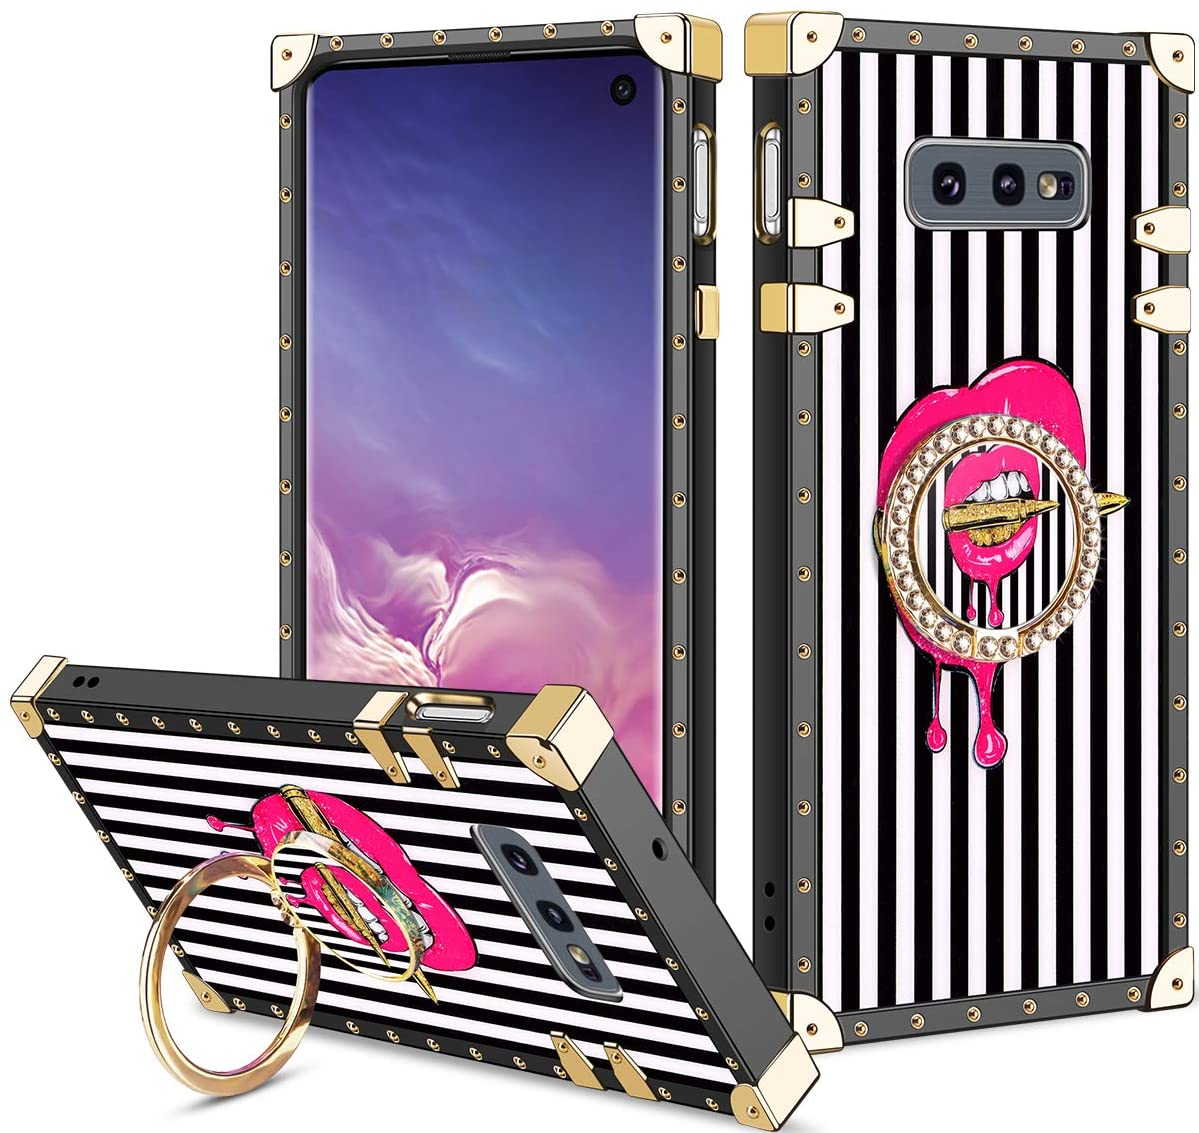 Vofolen Cover for Galaxy S10e Case Ring Holder Kickstand Exotic Colorful Square Diamond Rivet Protective Soft Shell Fold-able Clip Anti-Slip finger Loop for Samsung Galaxy S10e Black White Bullet Lips